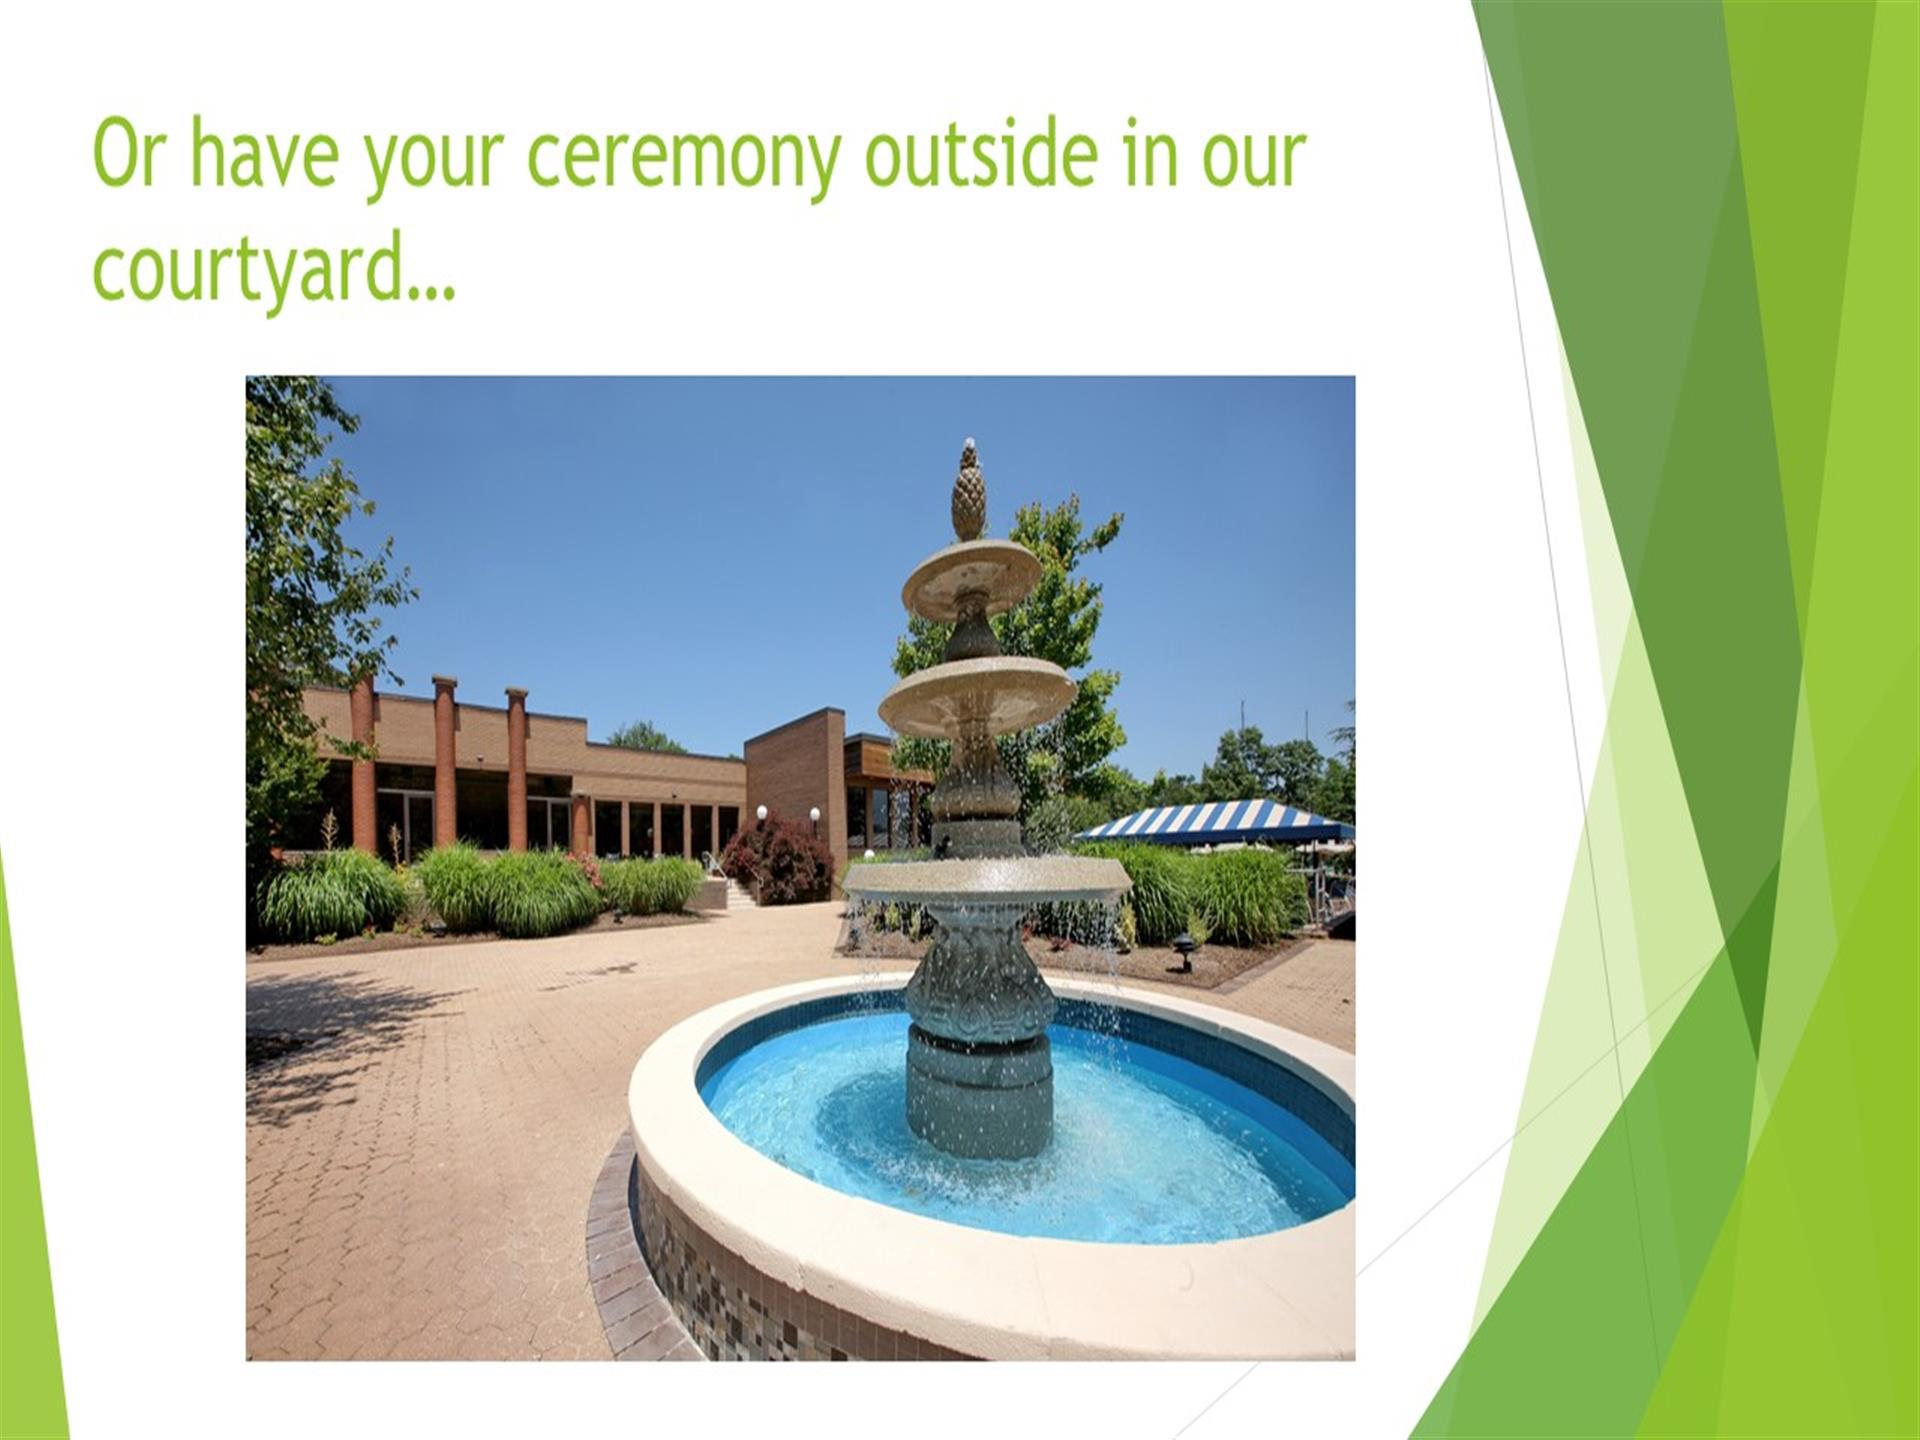 Or have your ceremony outside in our courtyard... waterfall in wading pool in courtyard, hotel in background